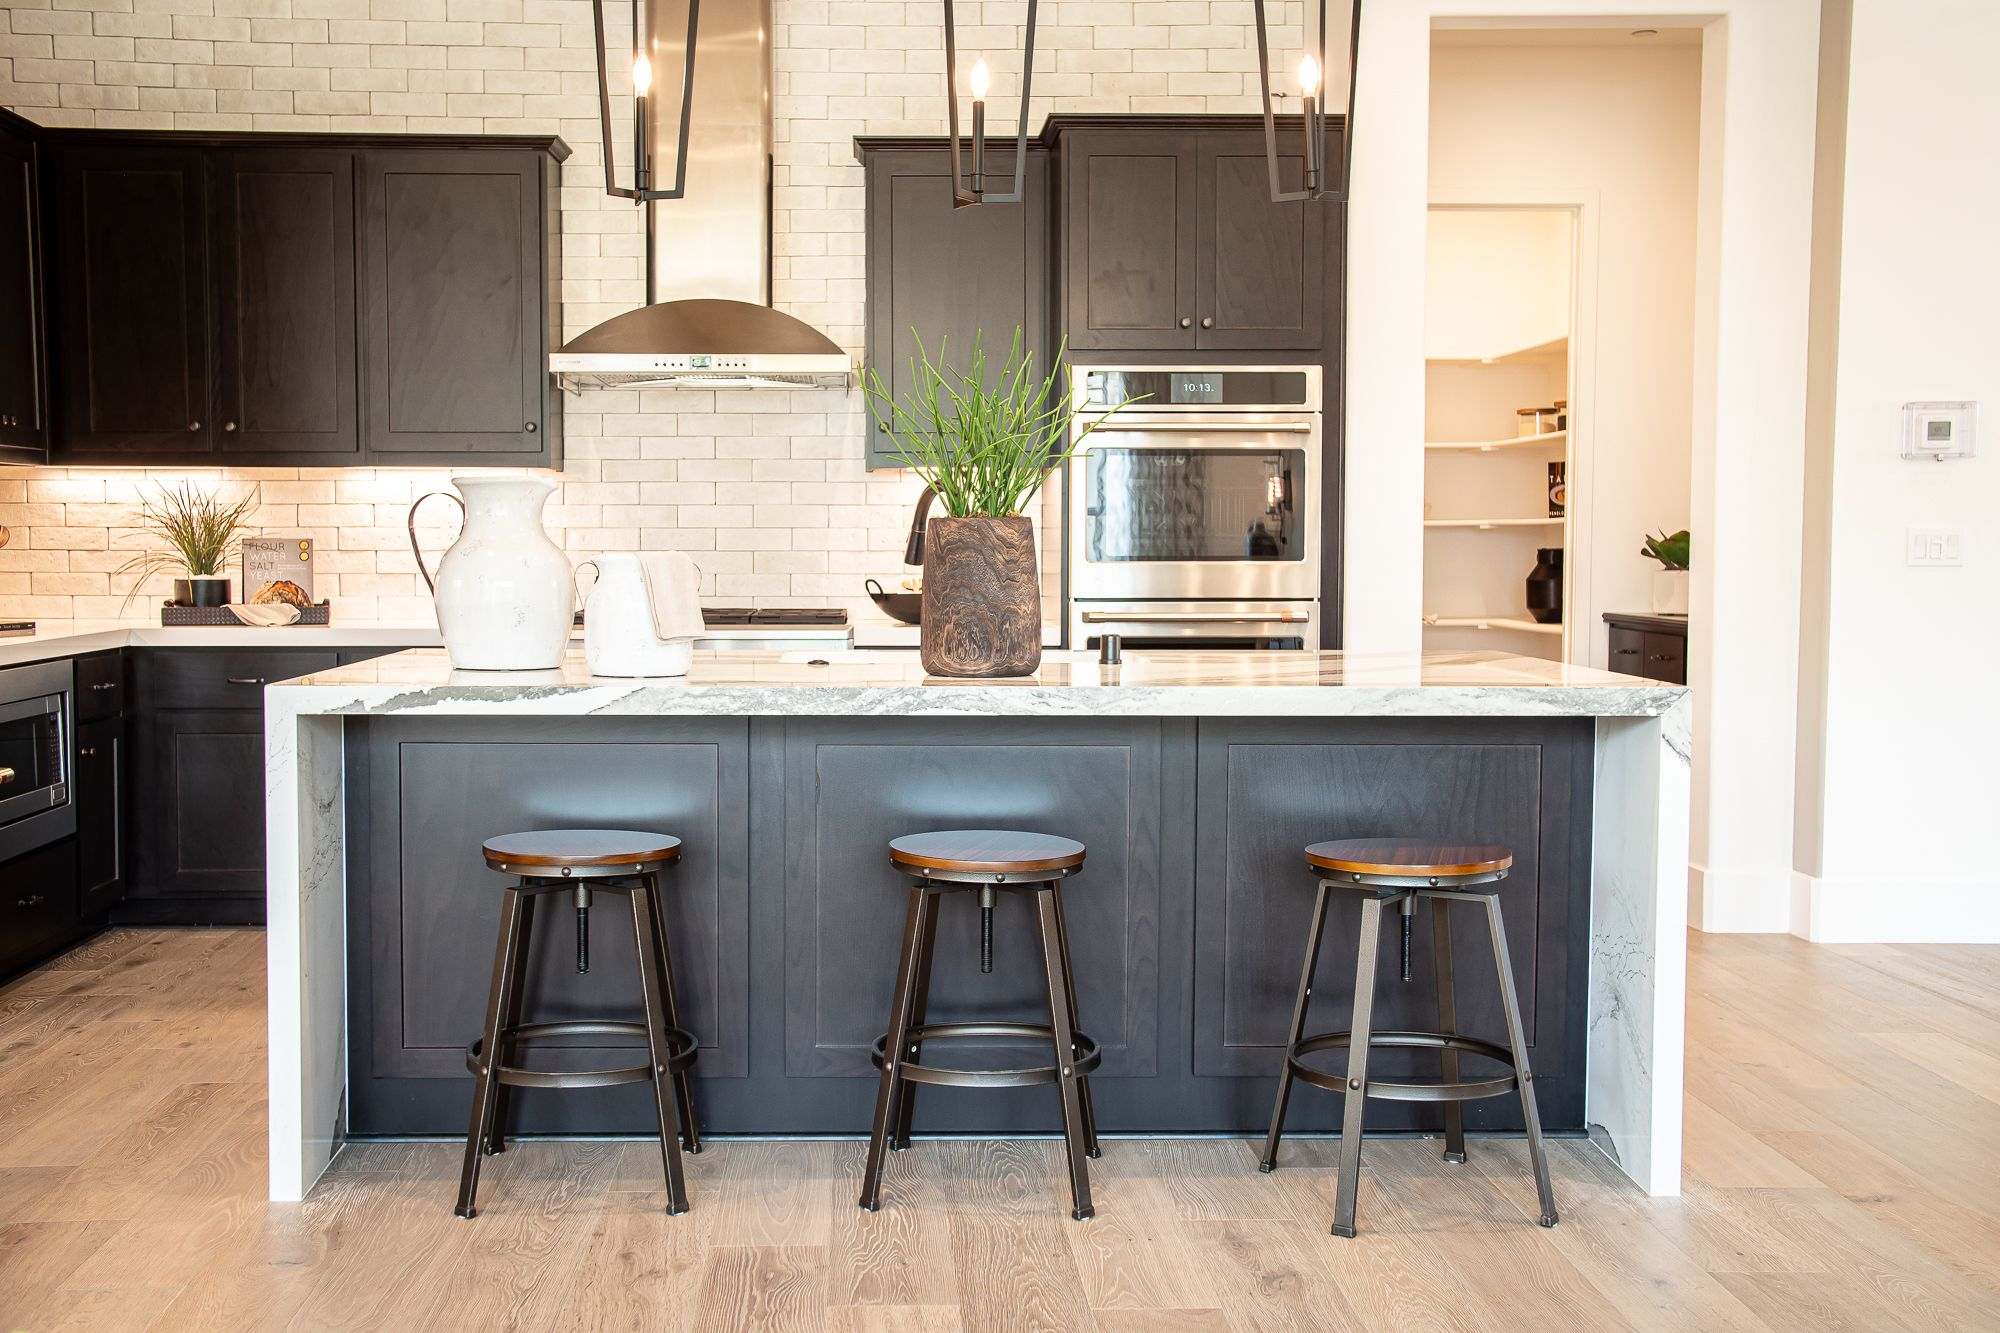 Kitchen featured in the Alley Row Collection Residence 8 By BlackPine Communites in Sacramento, CA